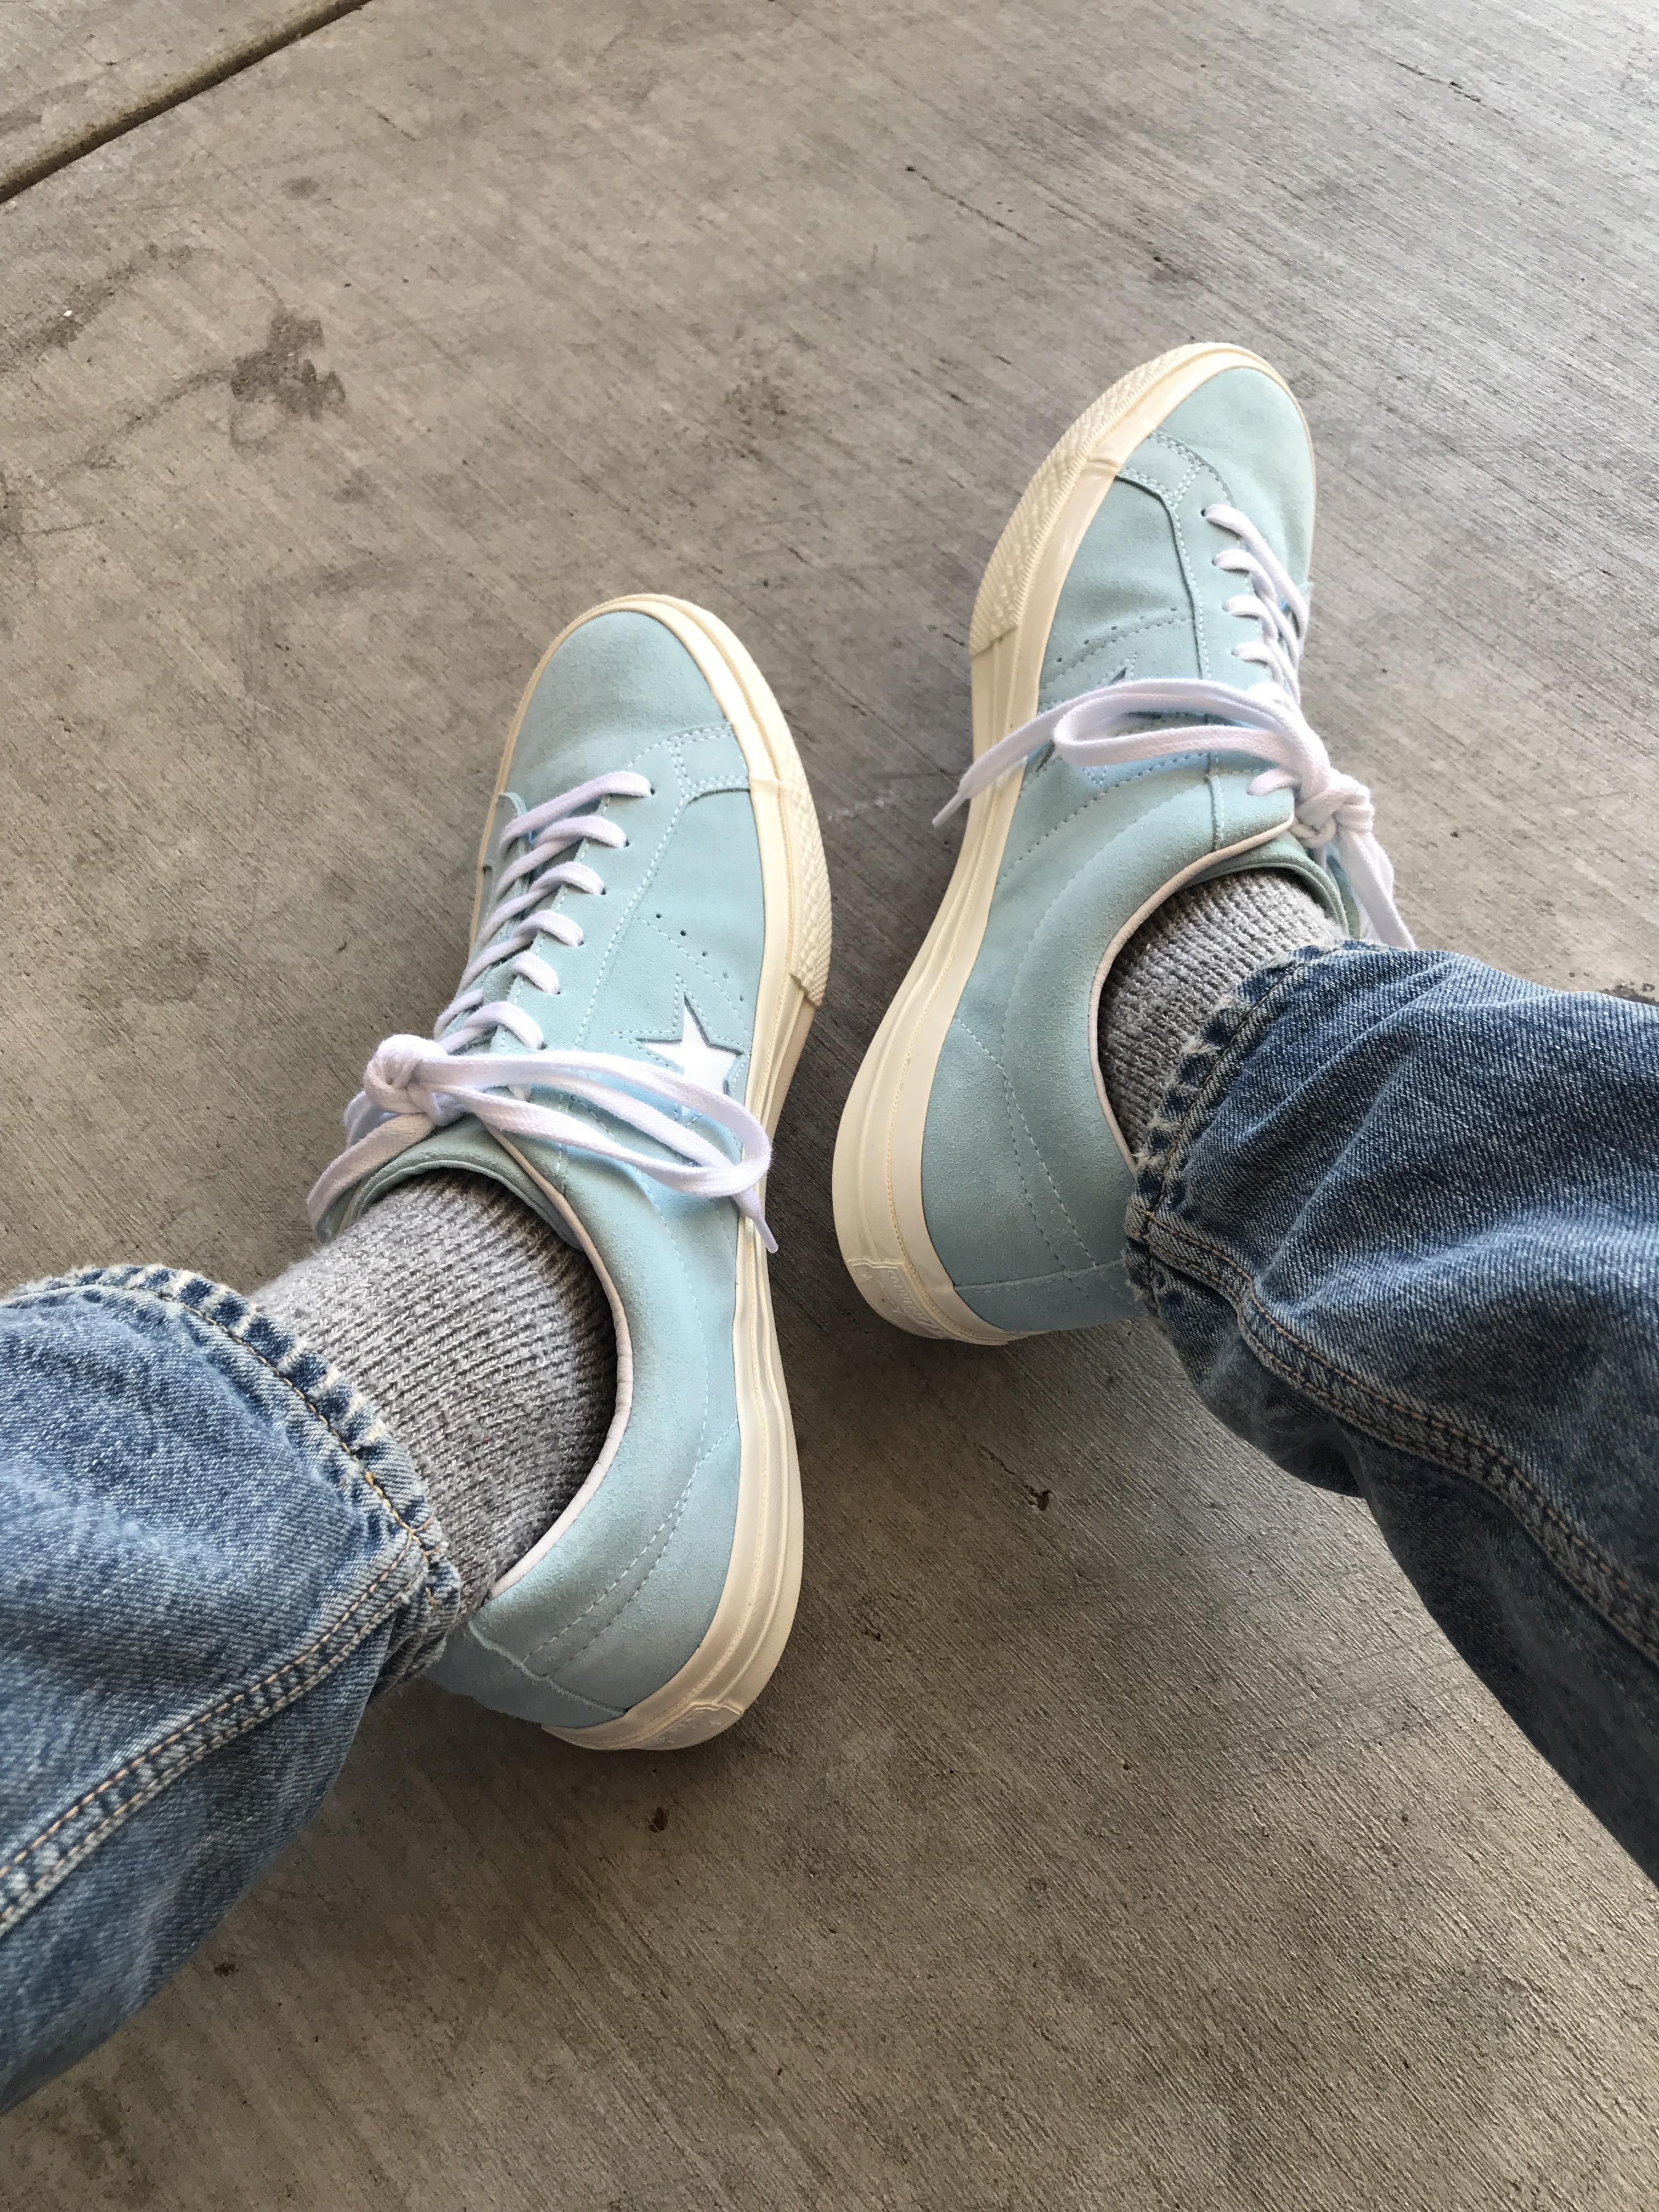 converse one star tyler the creator